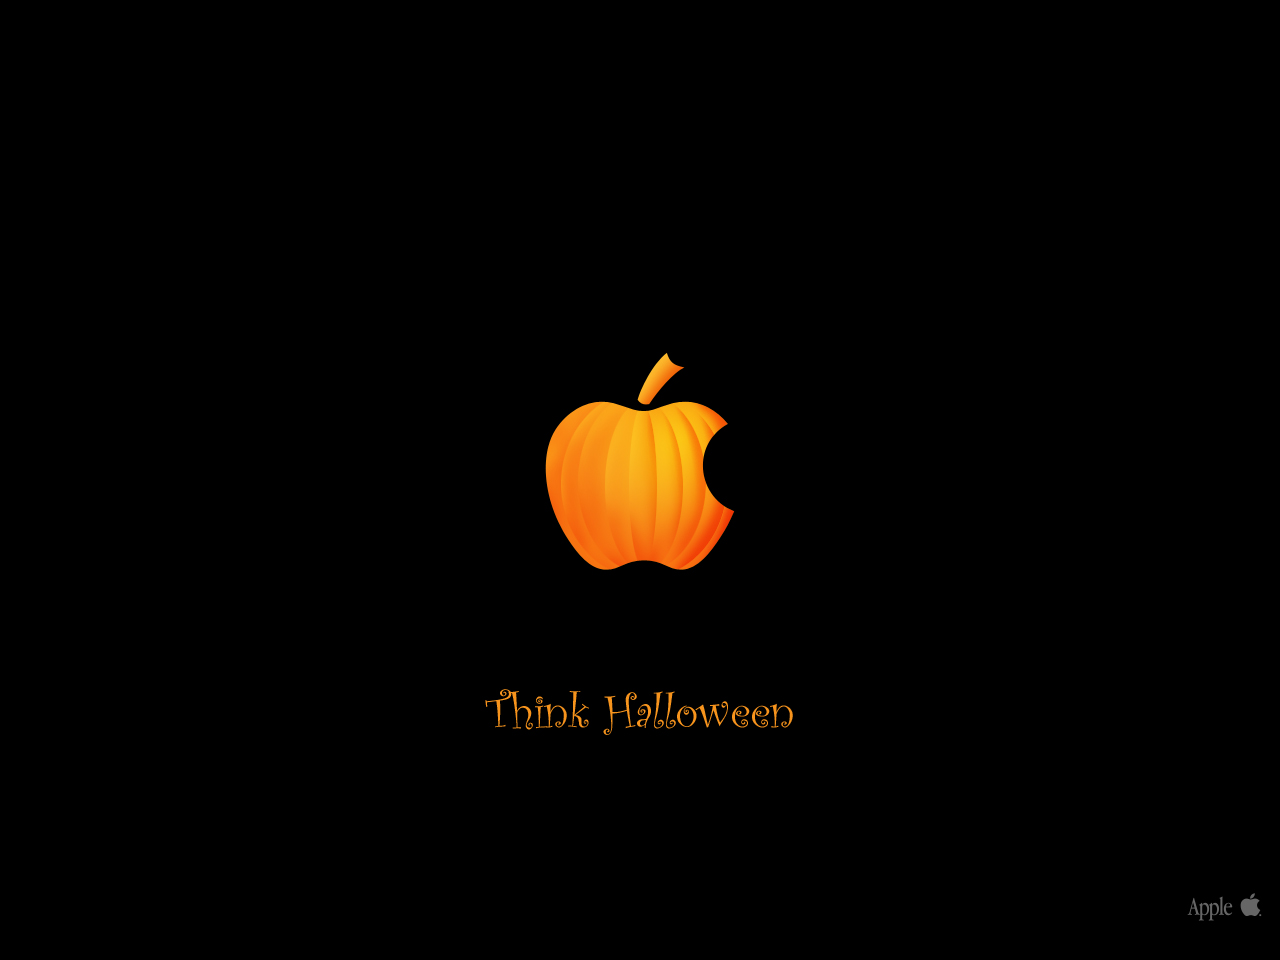 happy halloween wallpapers - photo #17